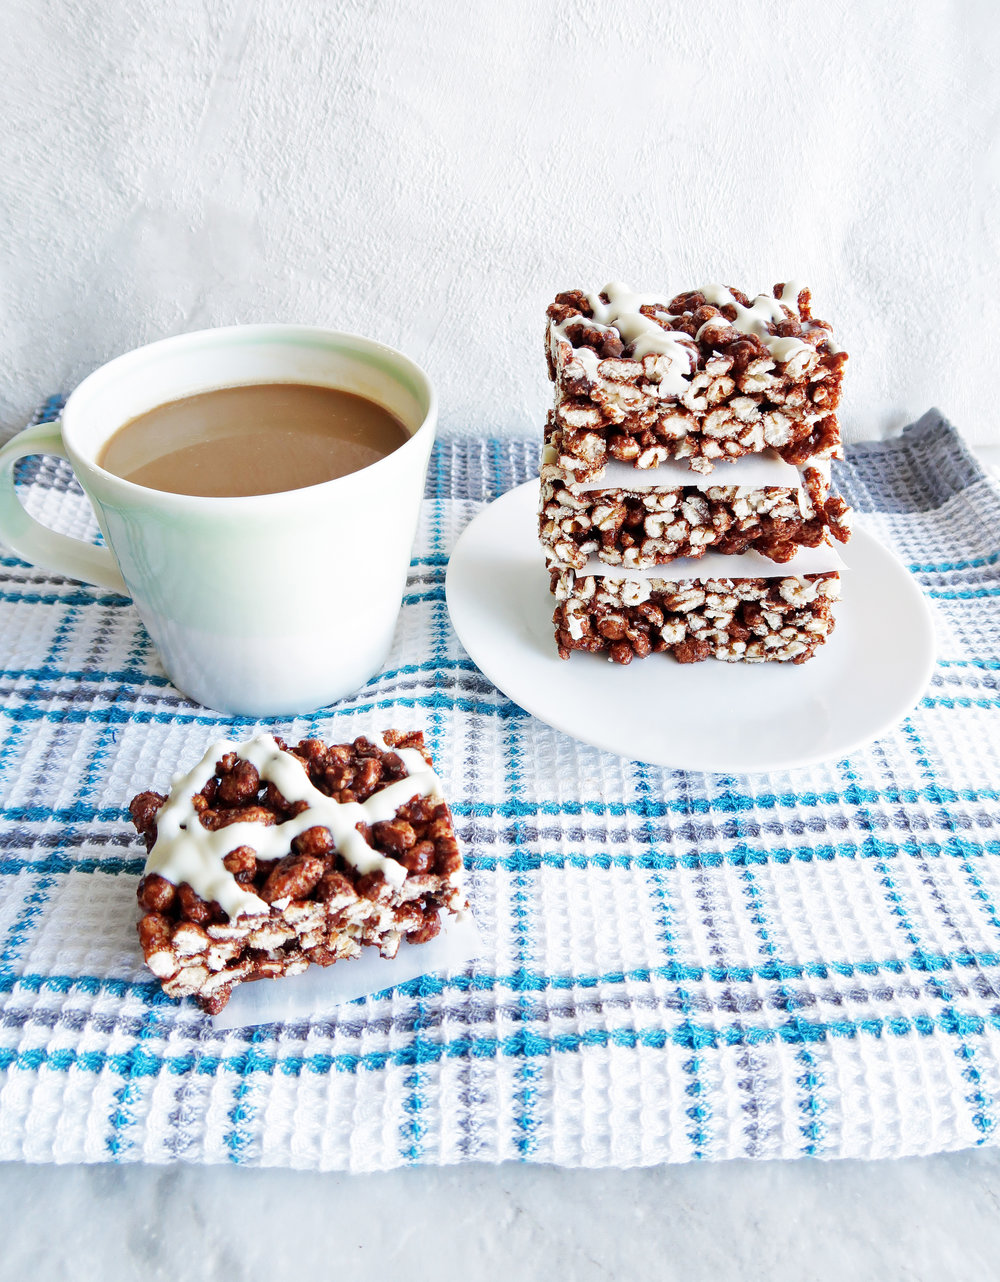 Three Chocolate Marshmallow Puffed Wheat Squares stacked on a white plate along with another puffed wheat square and cup of coffee beside the plate.